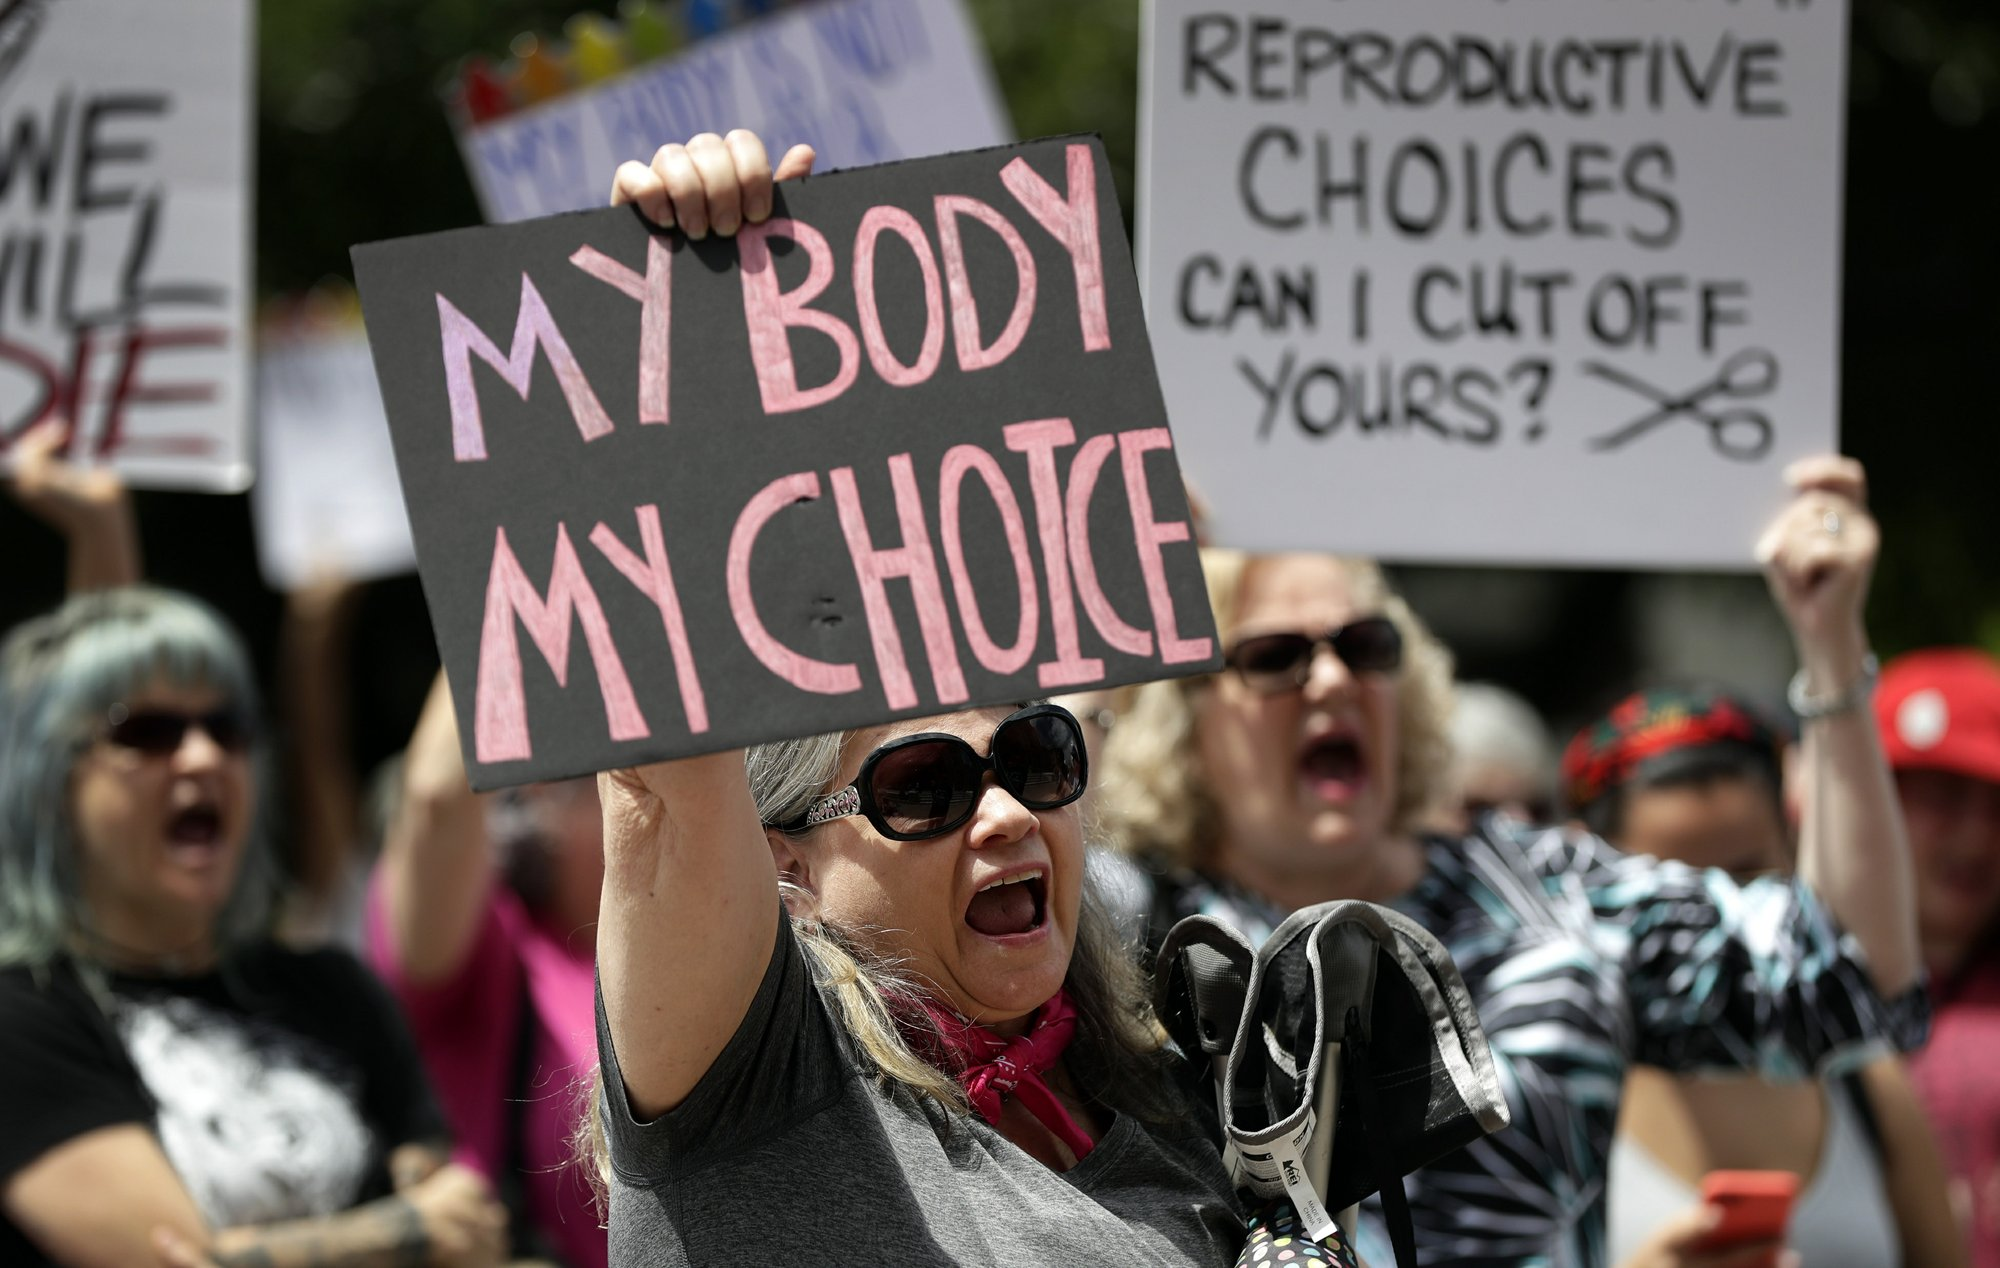 Texas hoping to revive law on burial of fetal remains